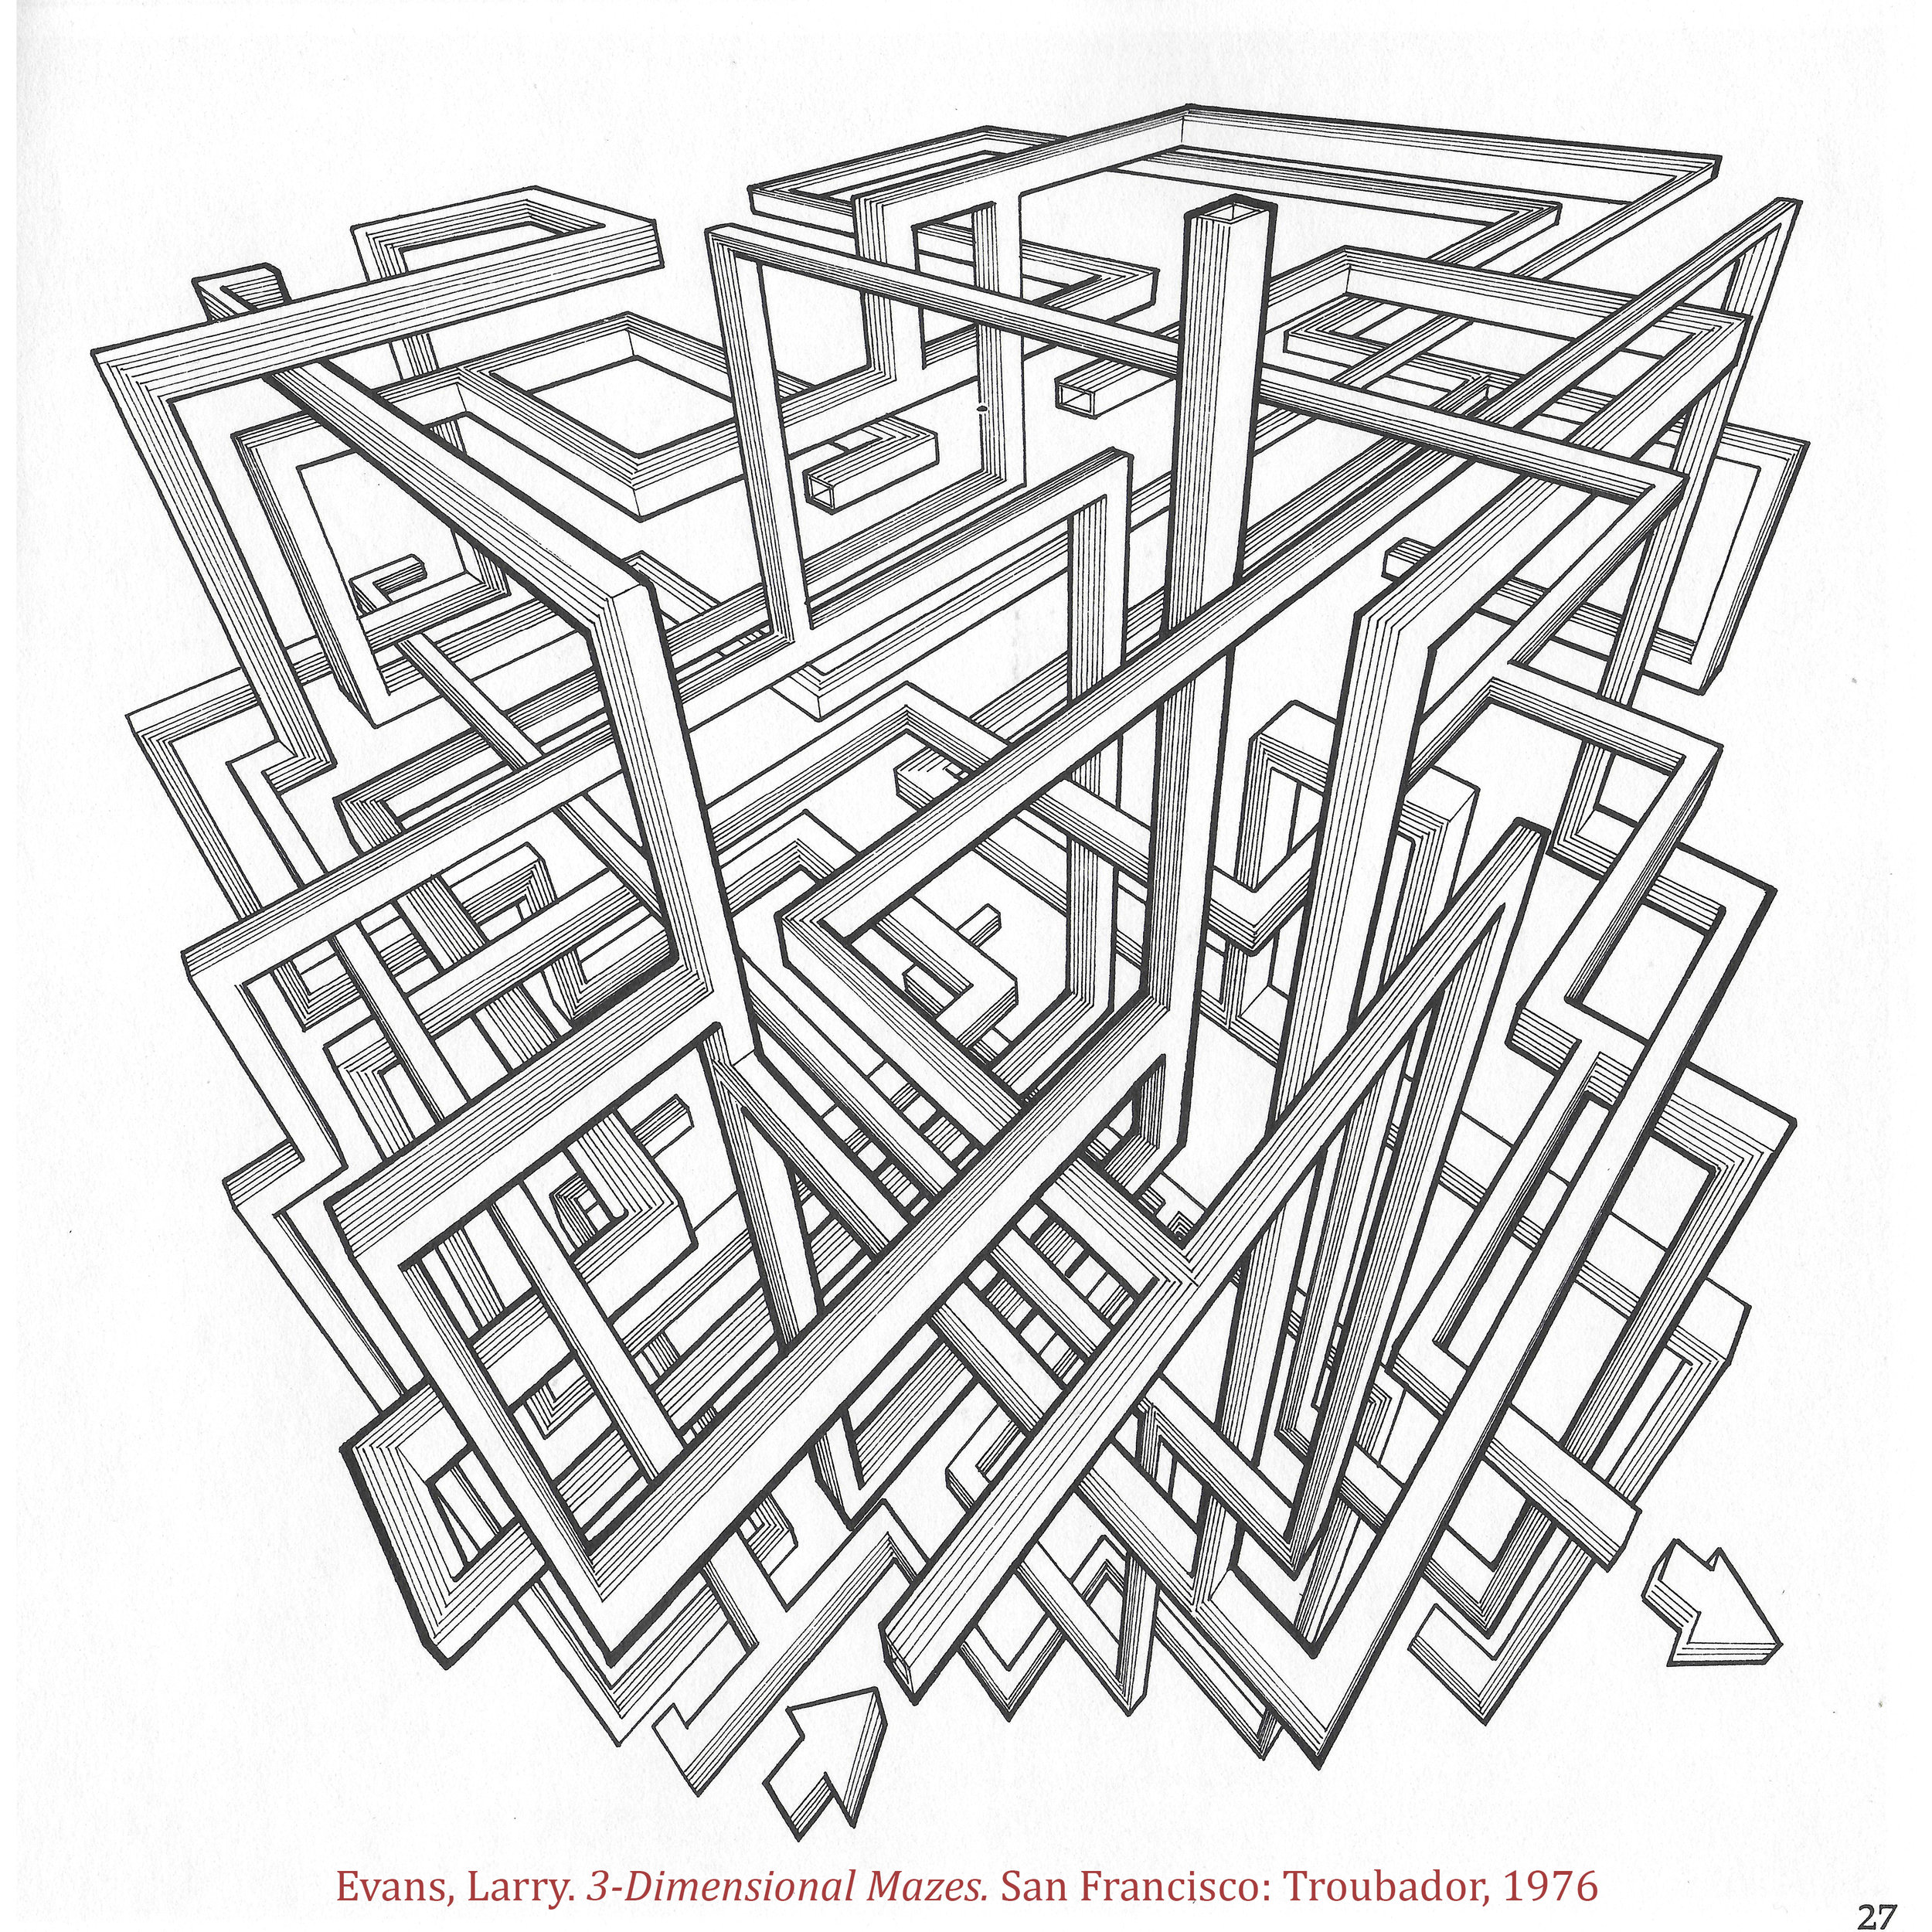 Evans professionally made architecture renderings and most of his mazes were ruled with strong one-, two- or three-point perspective. Needles to say, it was all manual pen and ink. No computers. How badass is that?